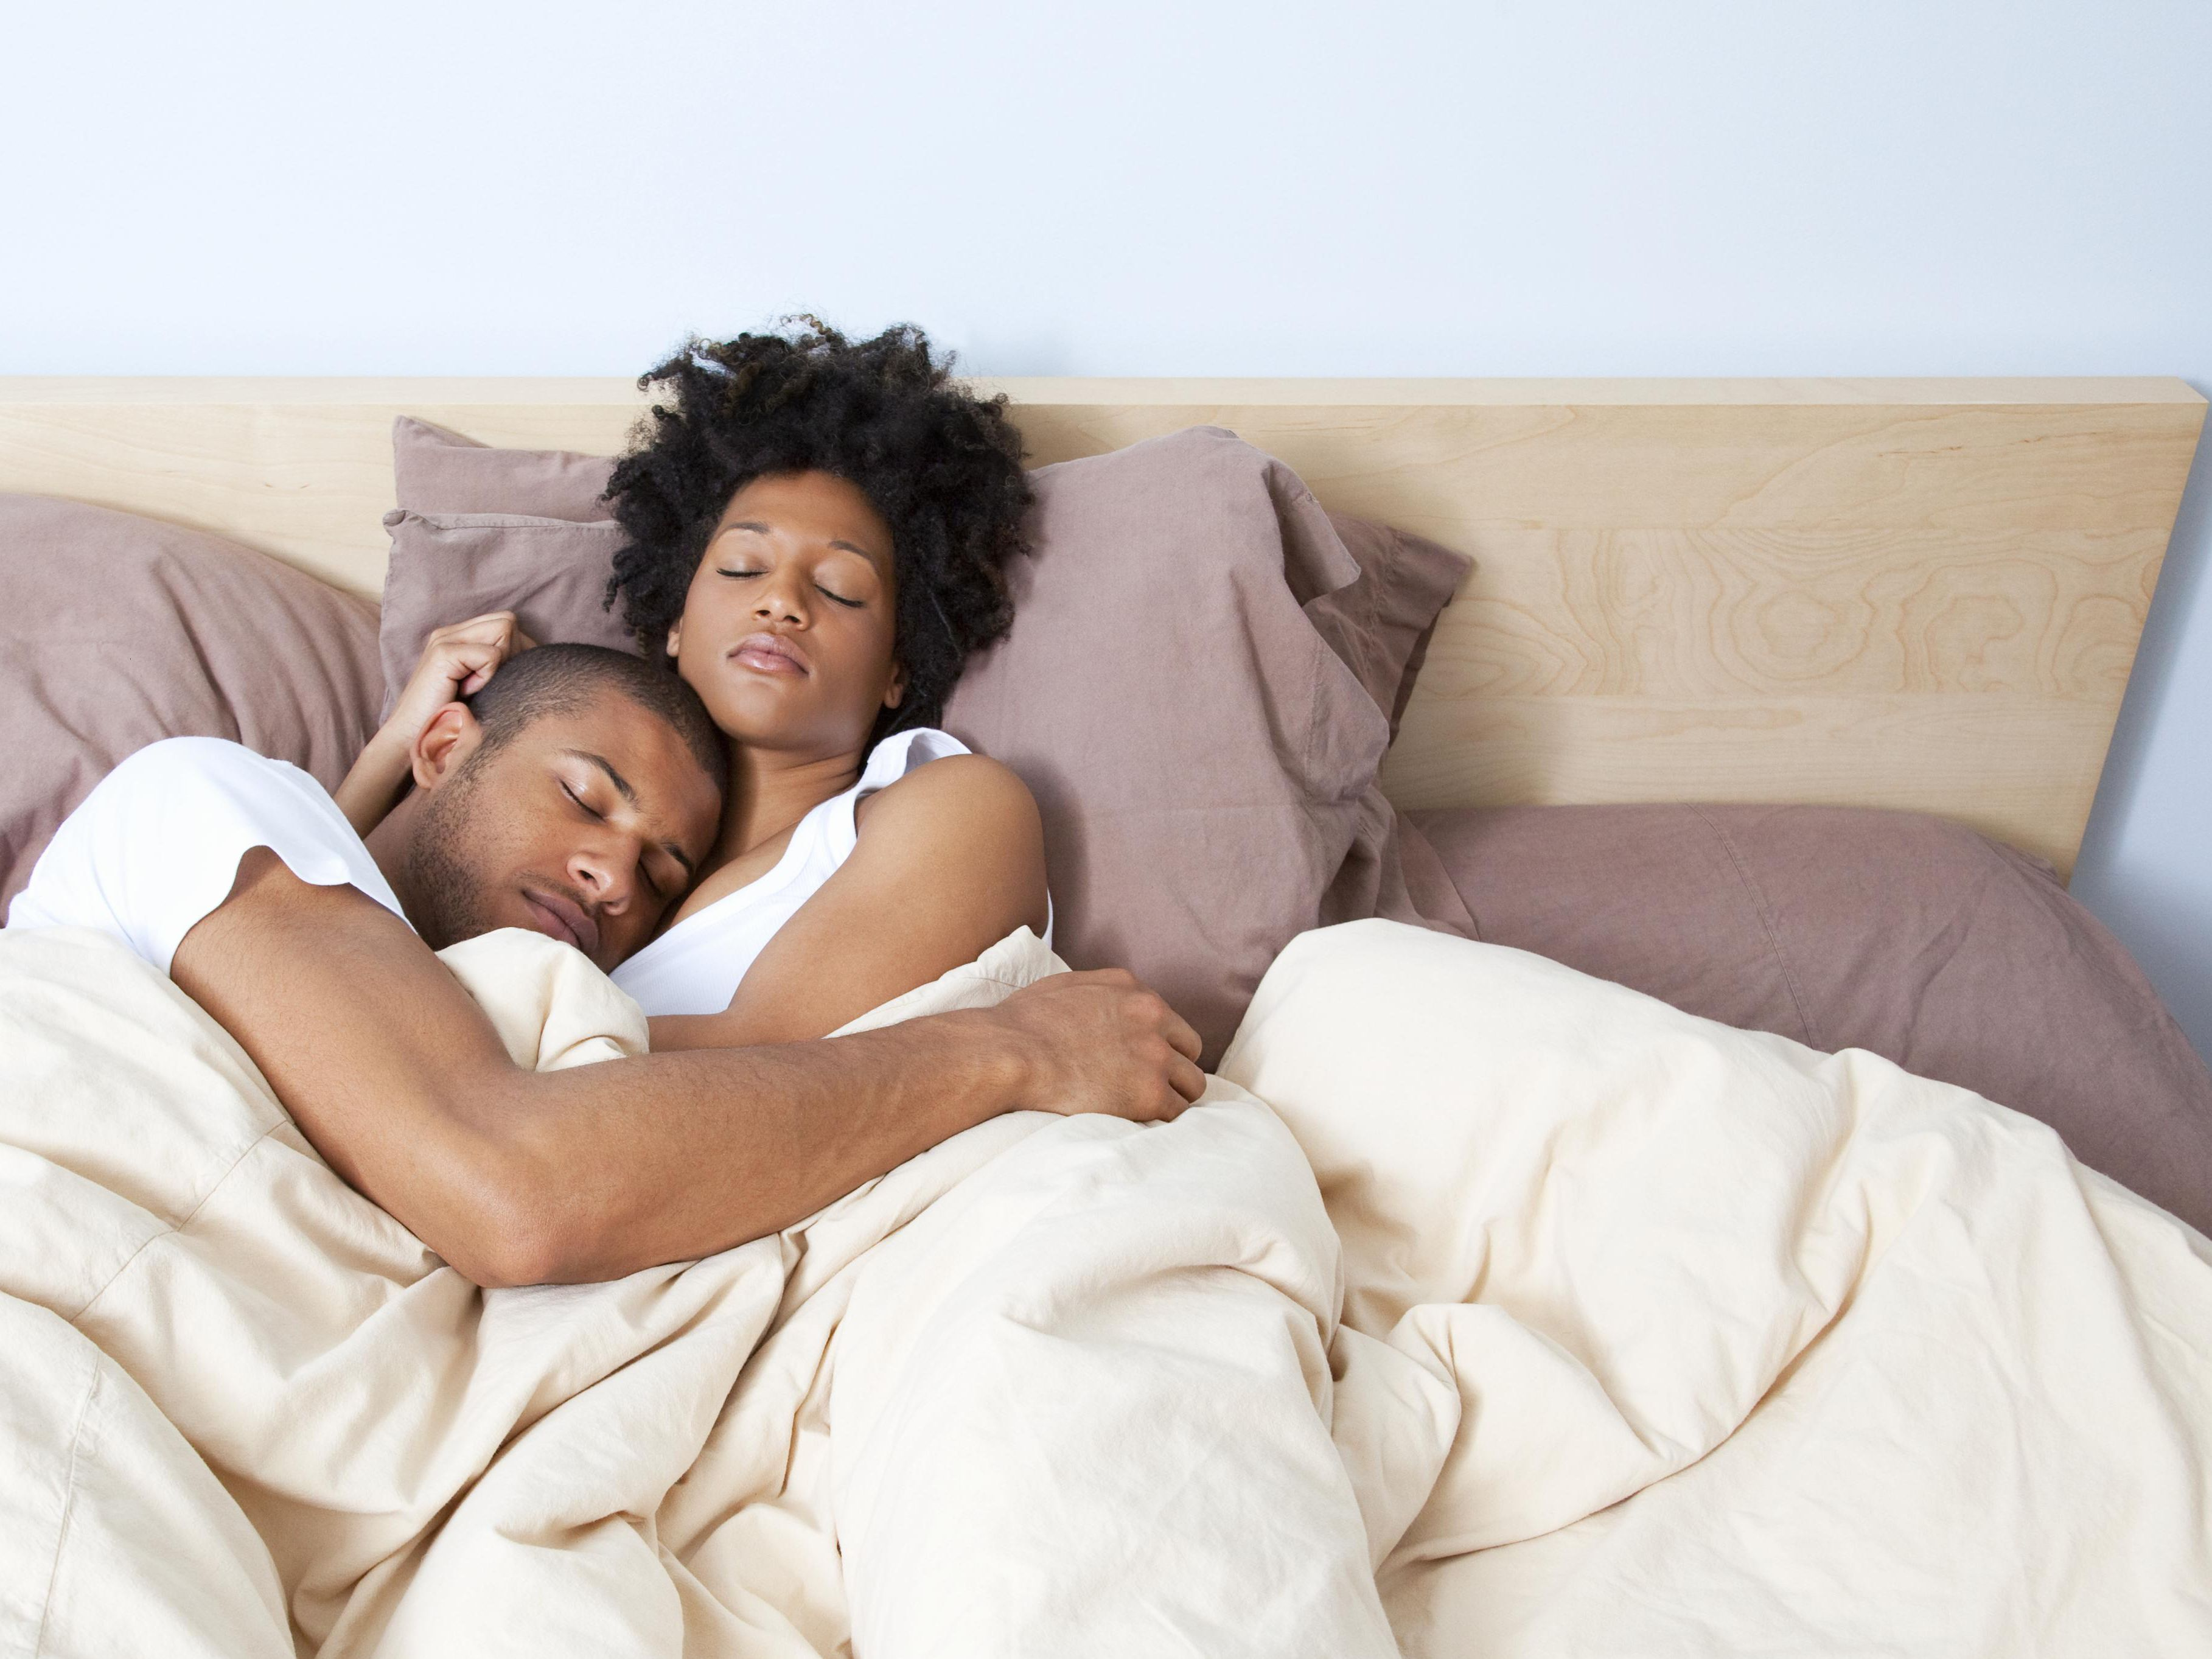 Married Couples And Sleeping Together